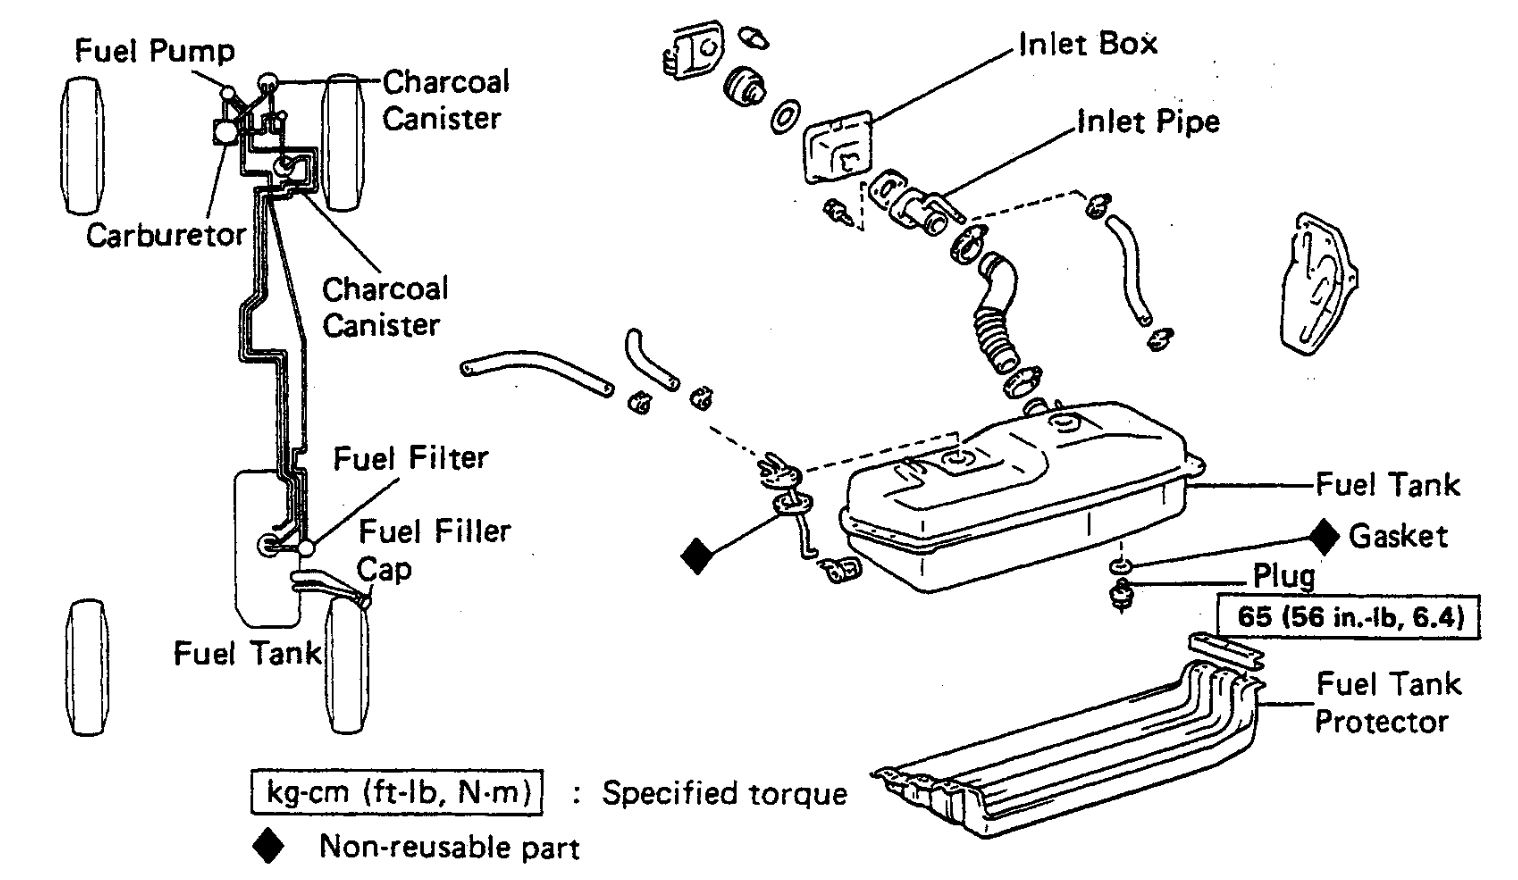 1986 Toyota Pickup Fuel System Diagram - Wiring Diagram Features